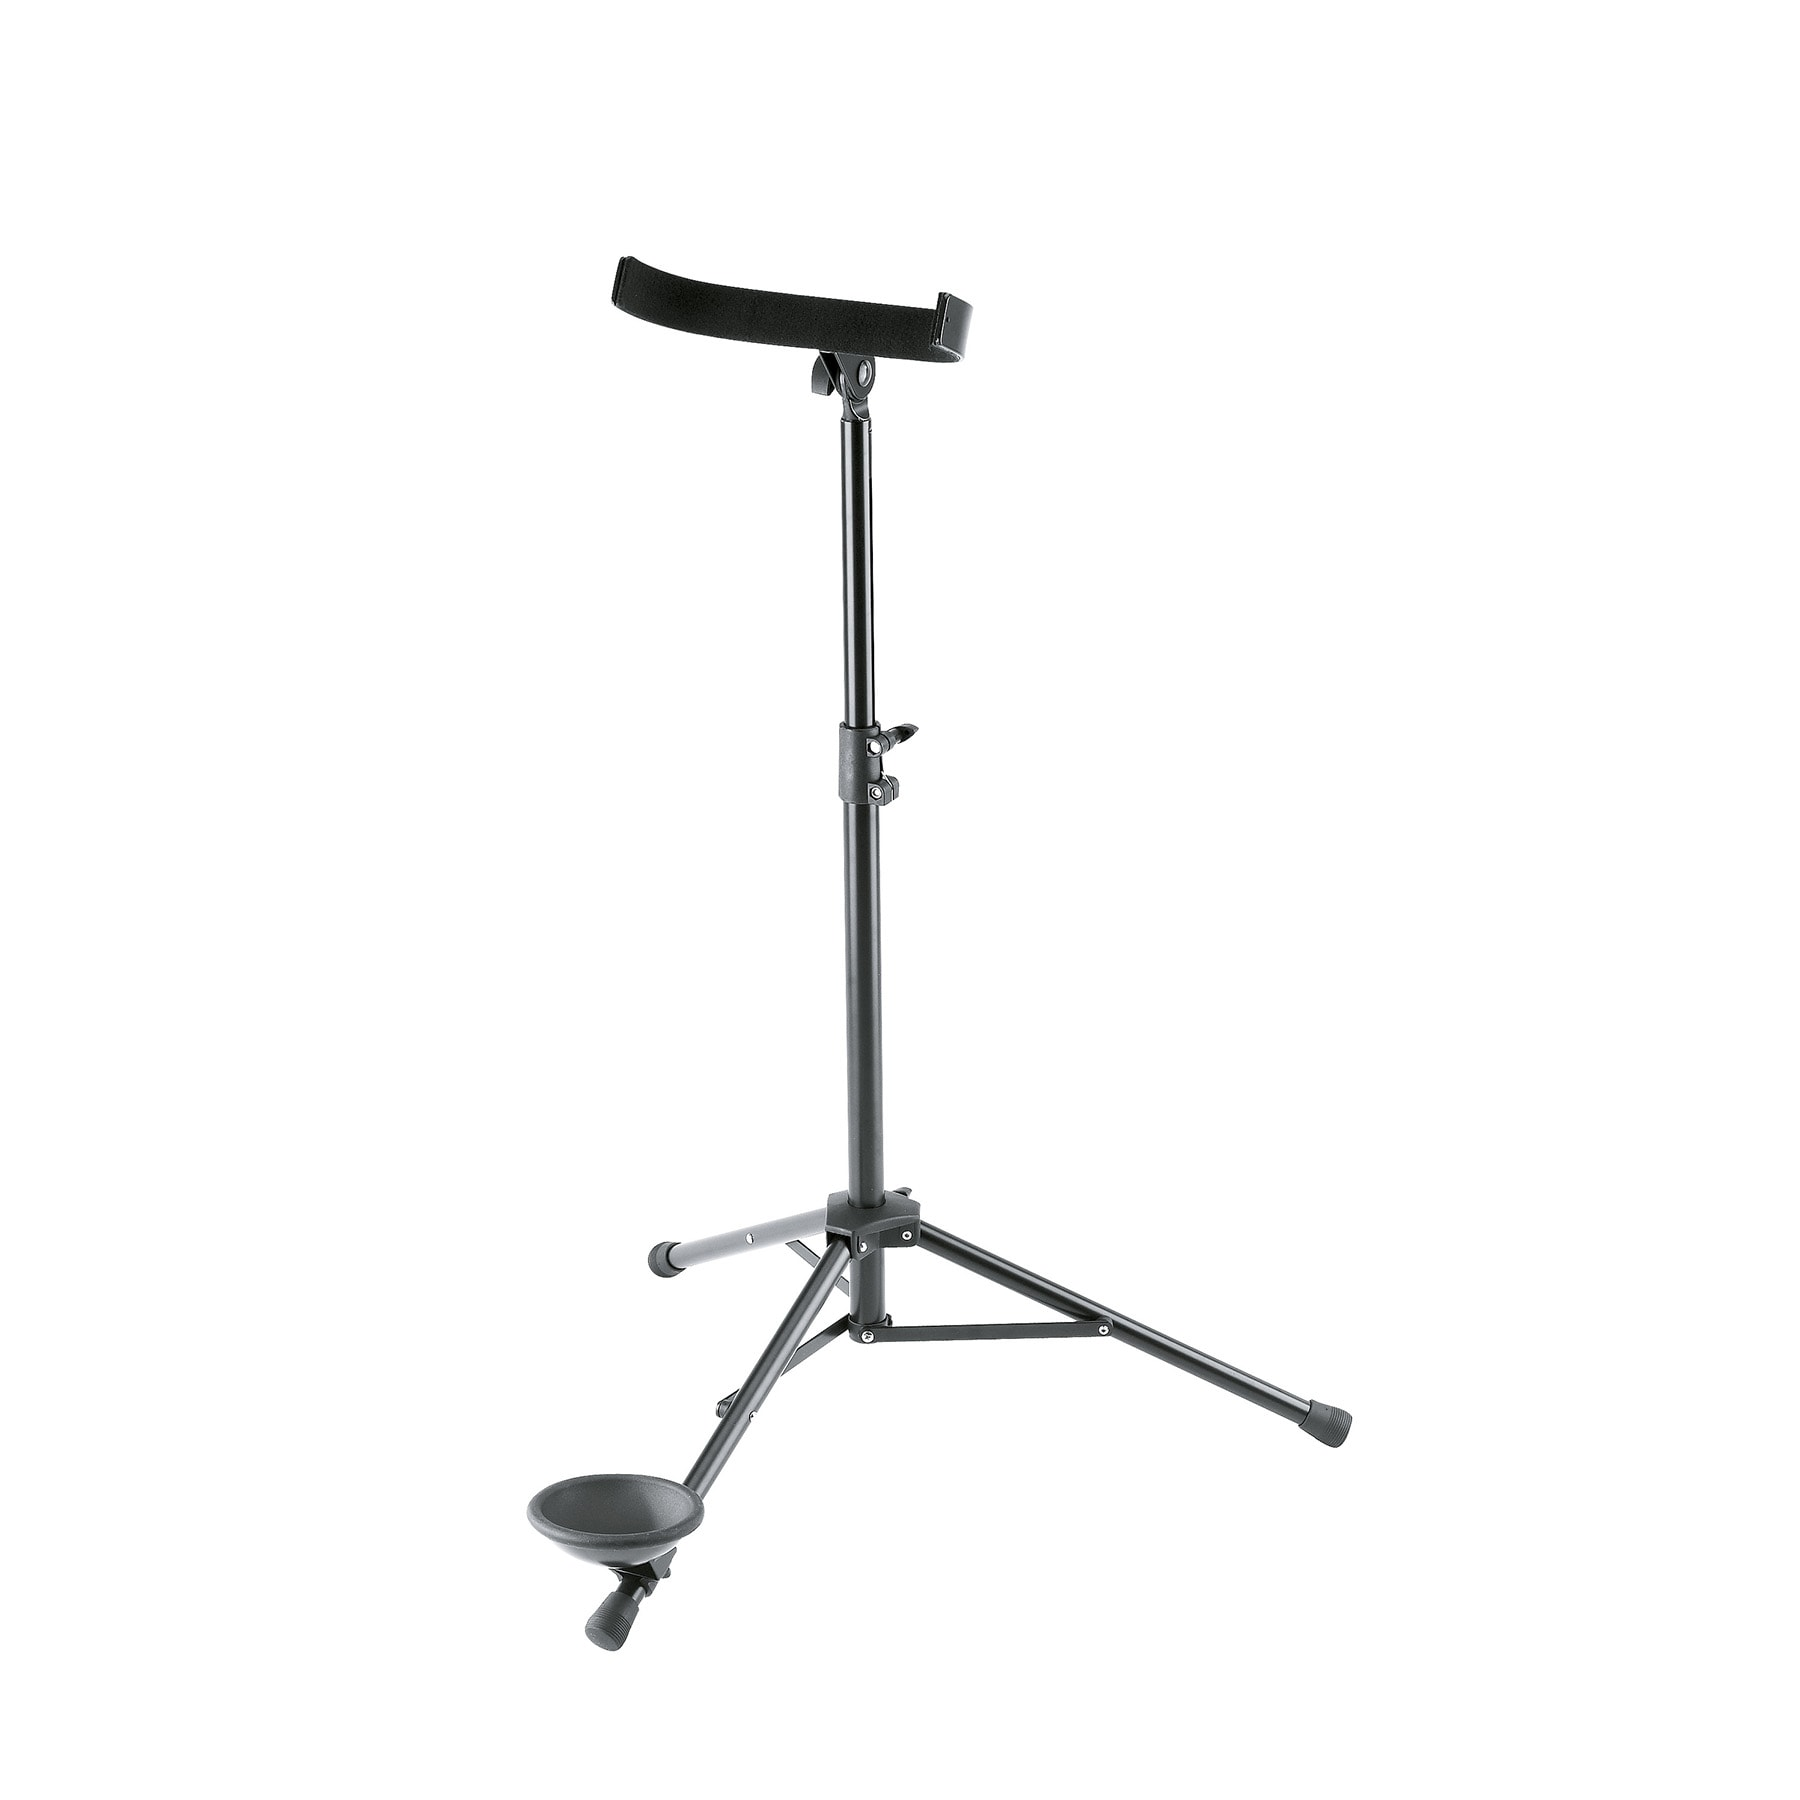 KM15045 - Contrabassoon stand